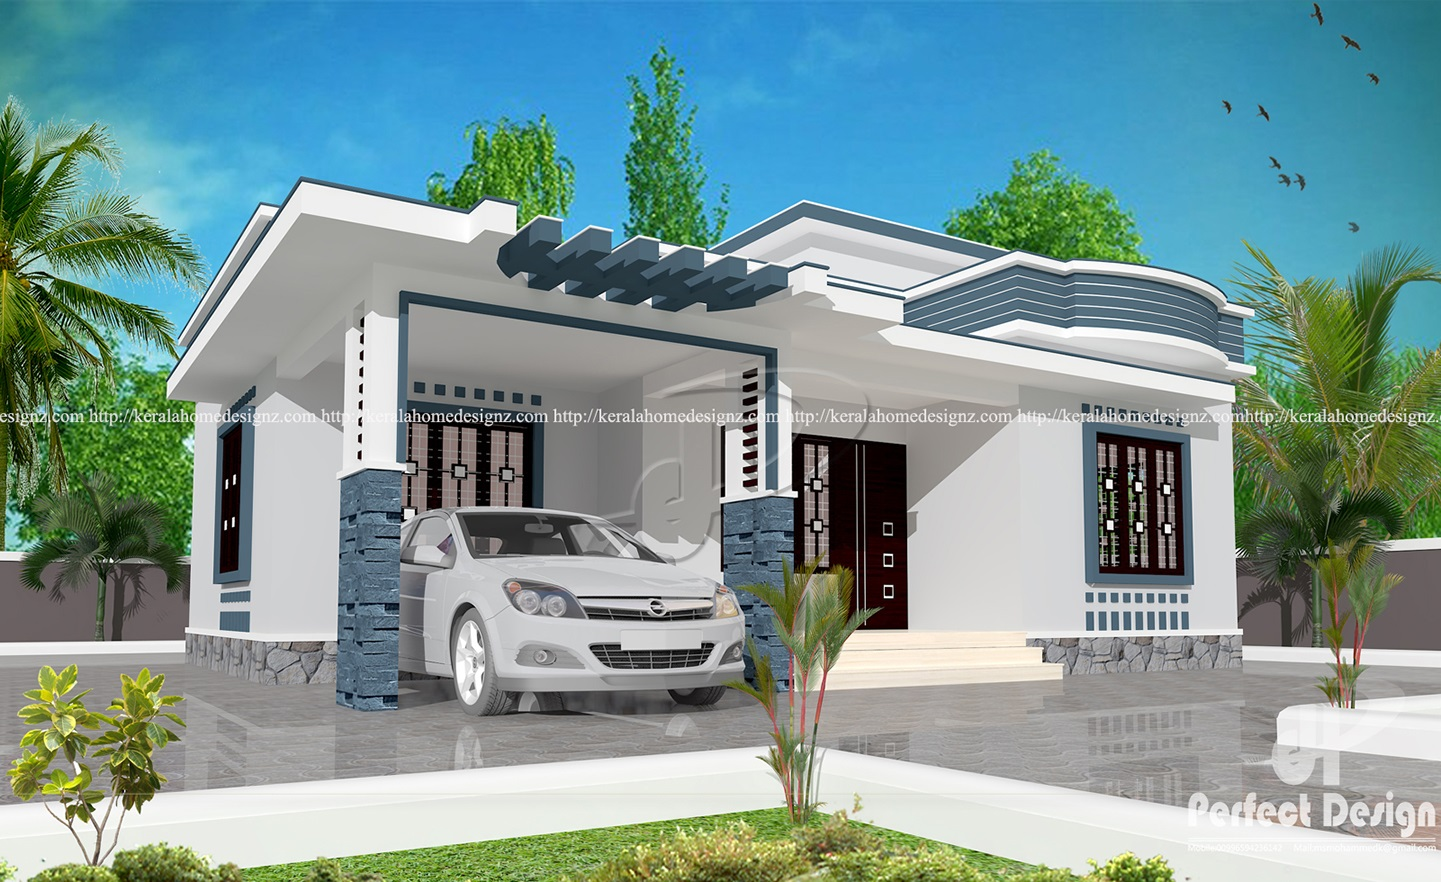 10 lakhs cost estimated modern home kerala home design for Www homedesign com